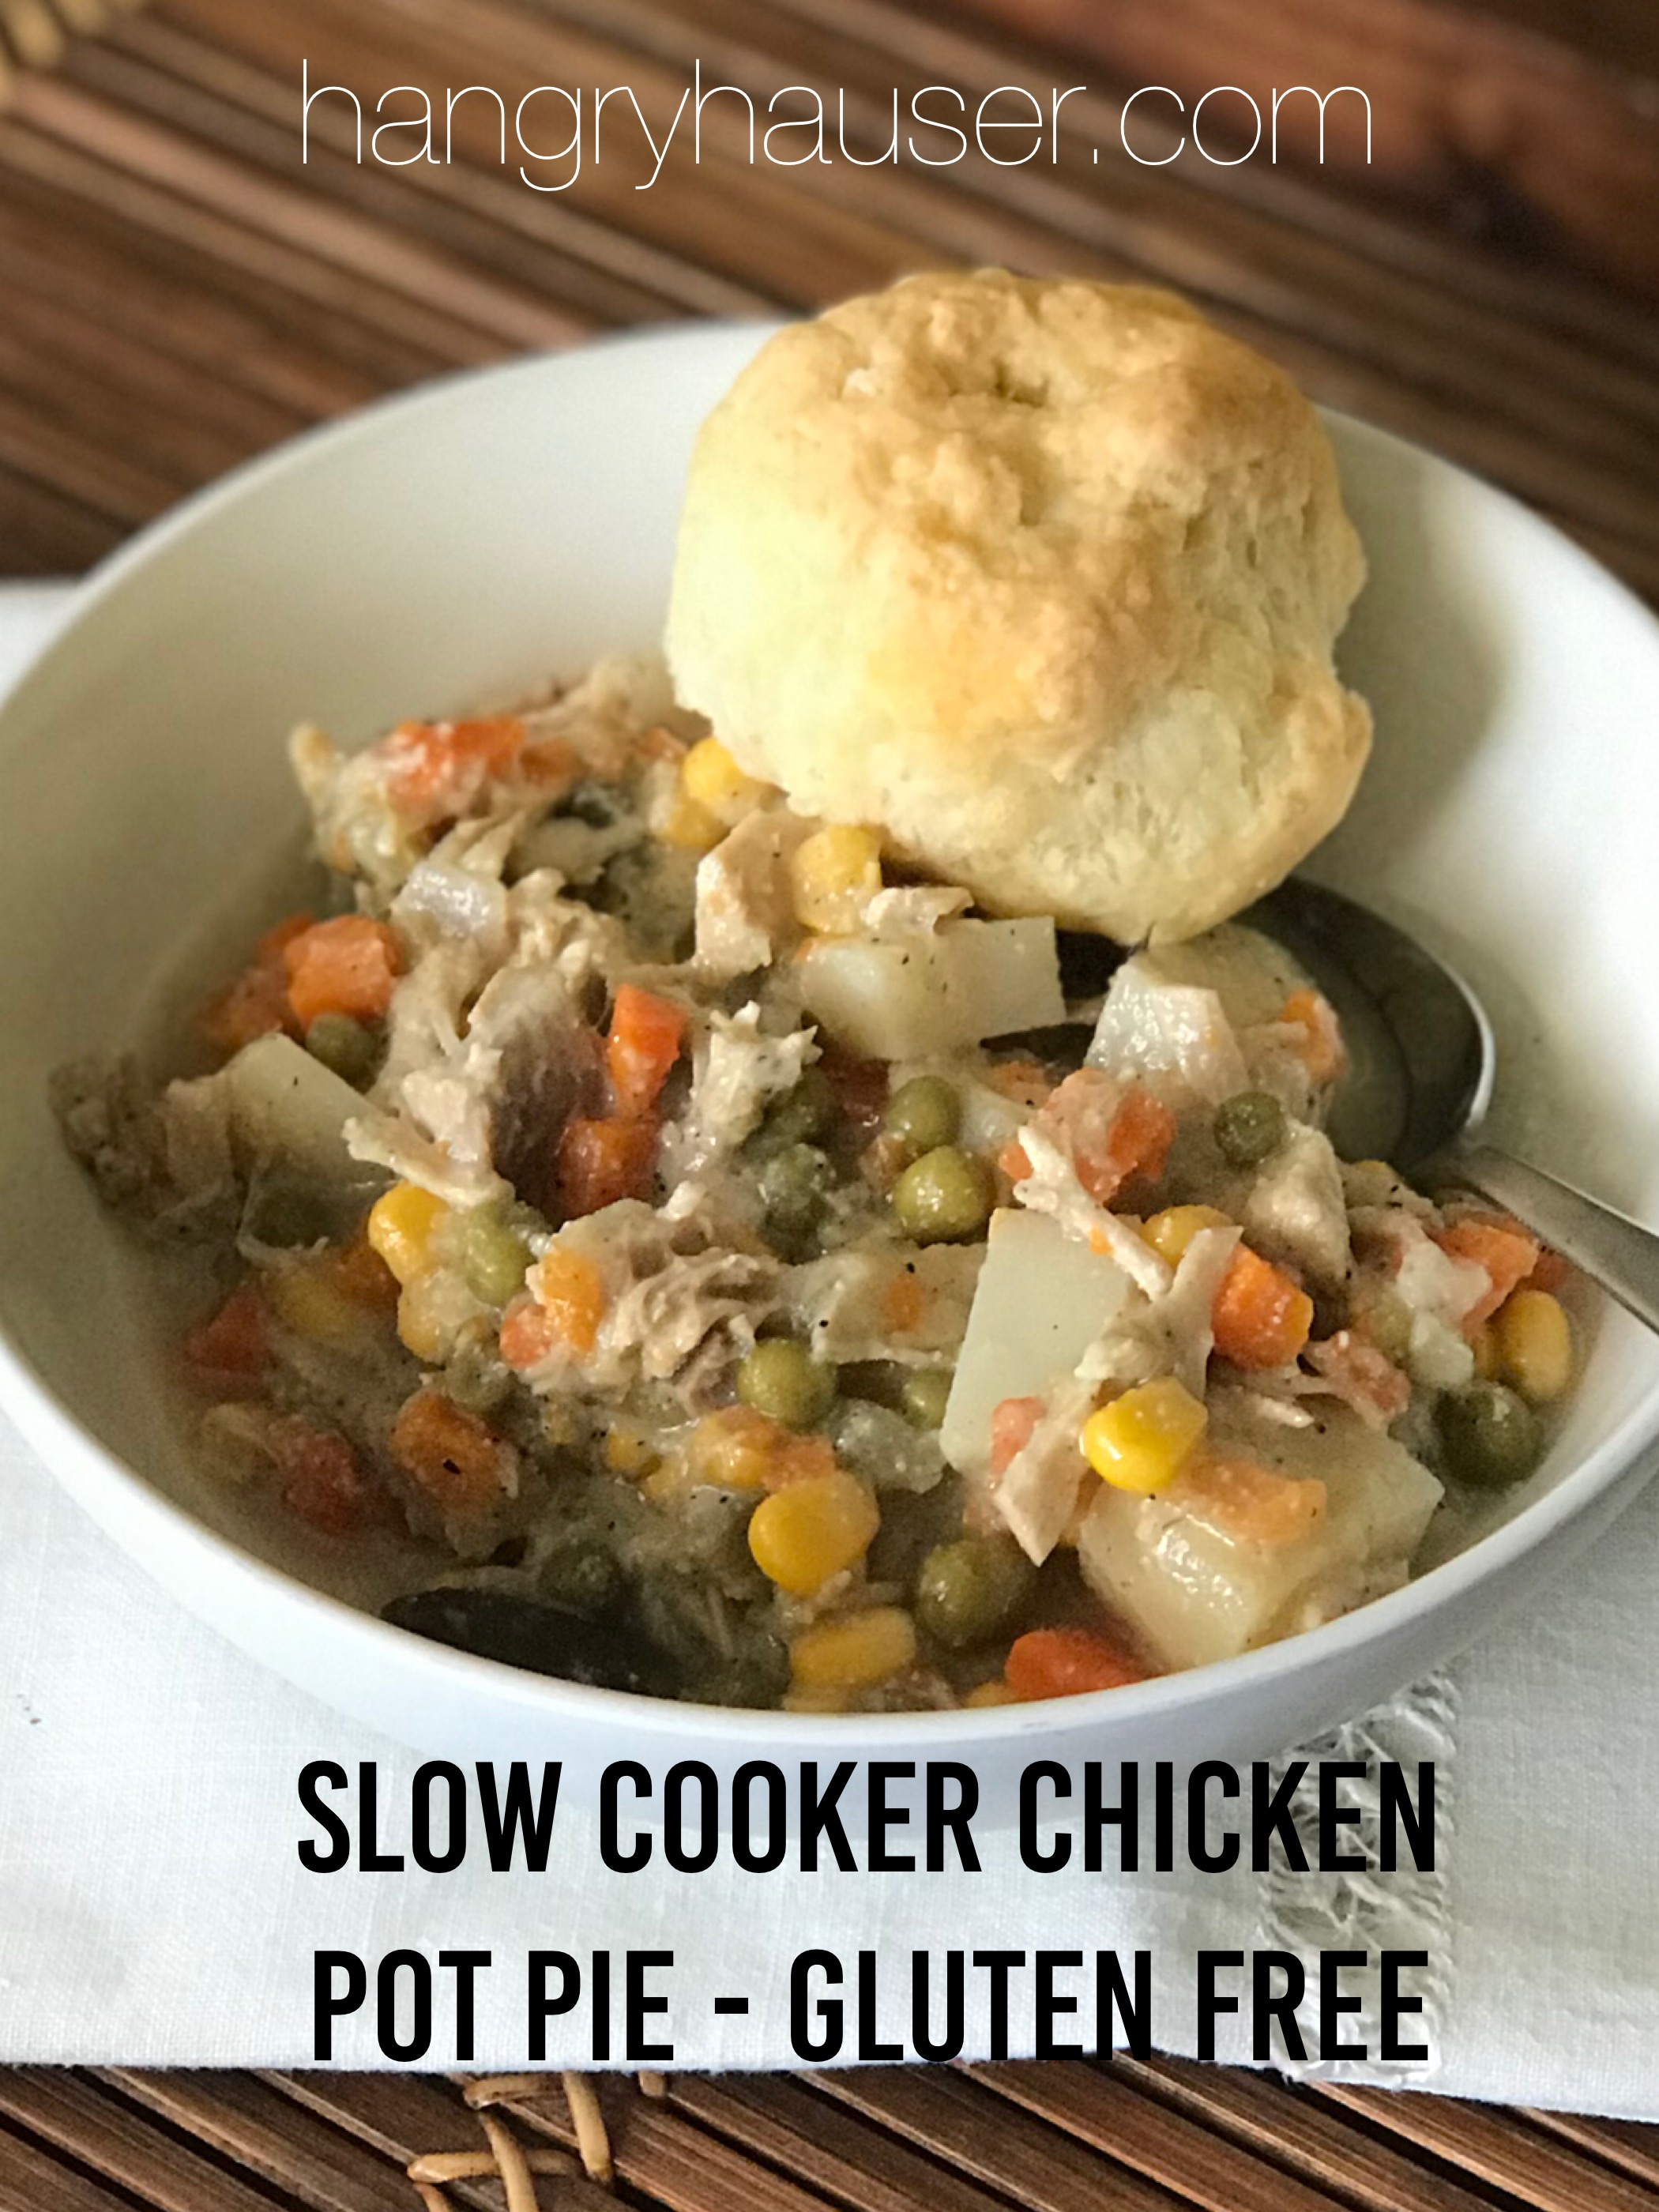 slow cooker chicken pot pie - gluten free